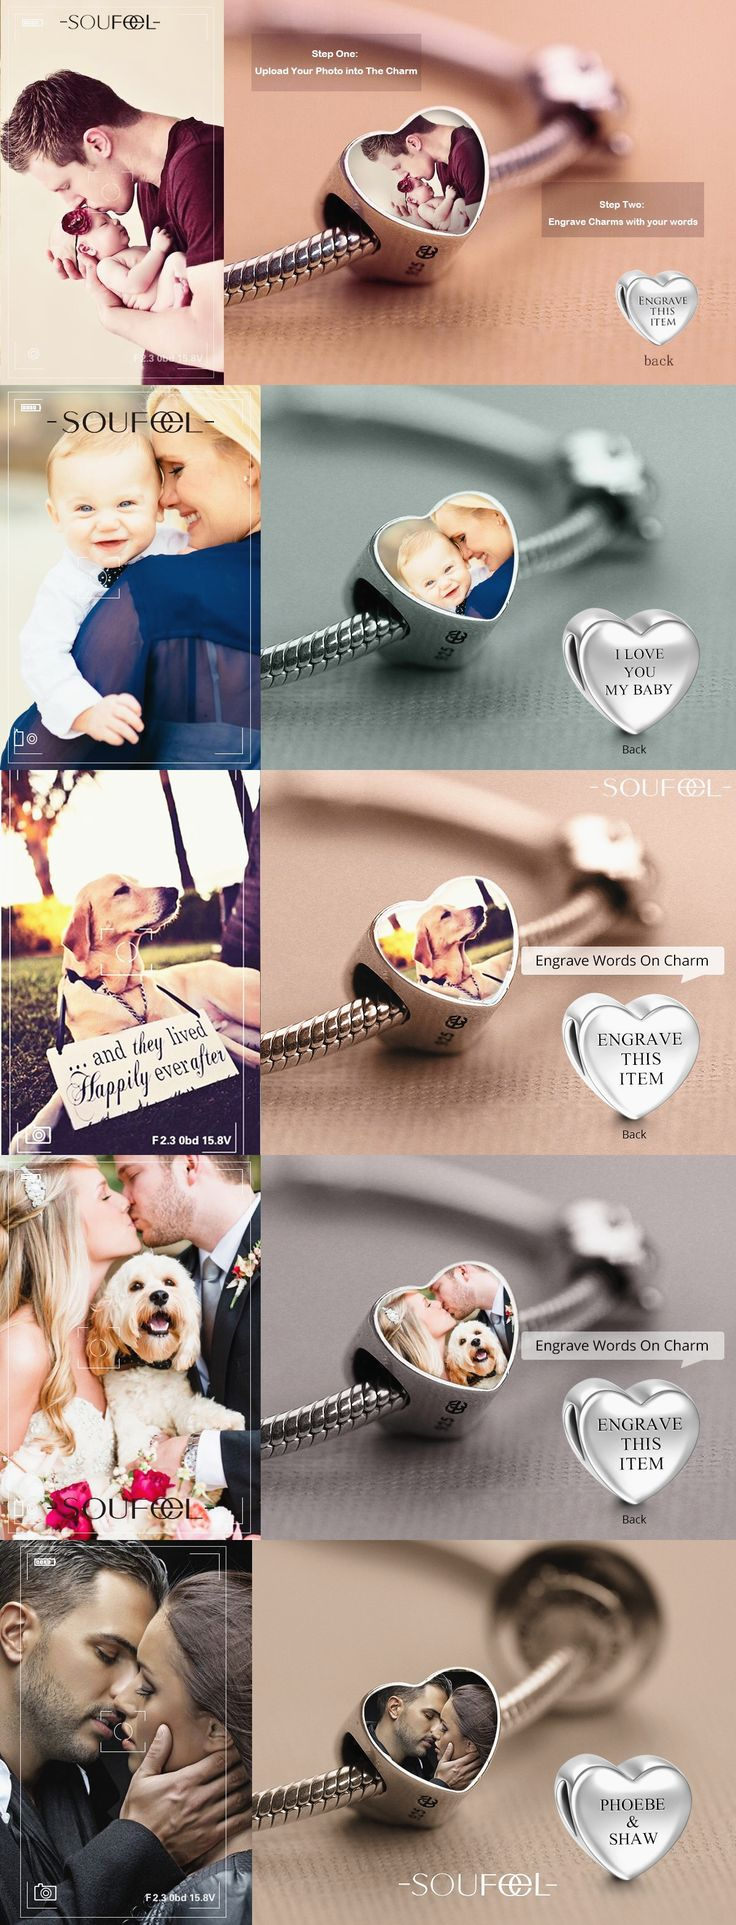 Make a Charm Bracelet with Your Photo in the Front & Engrave Some Words You Wanna Say on the Back.